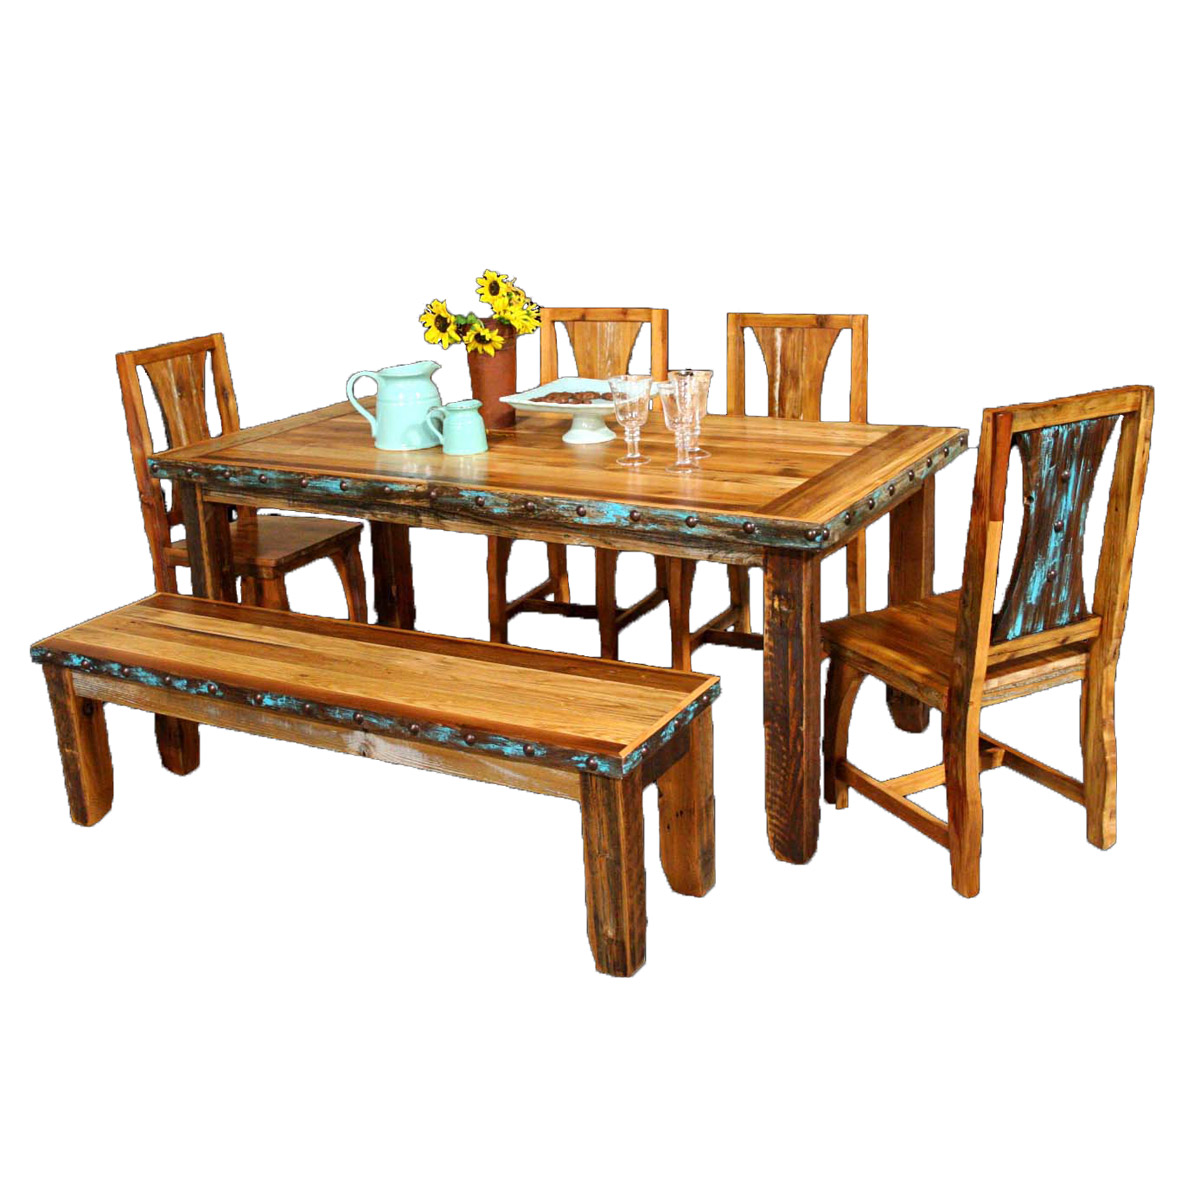 Black Forest Decor Barnwood azul table & chairs with benc...